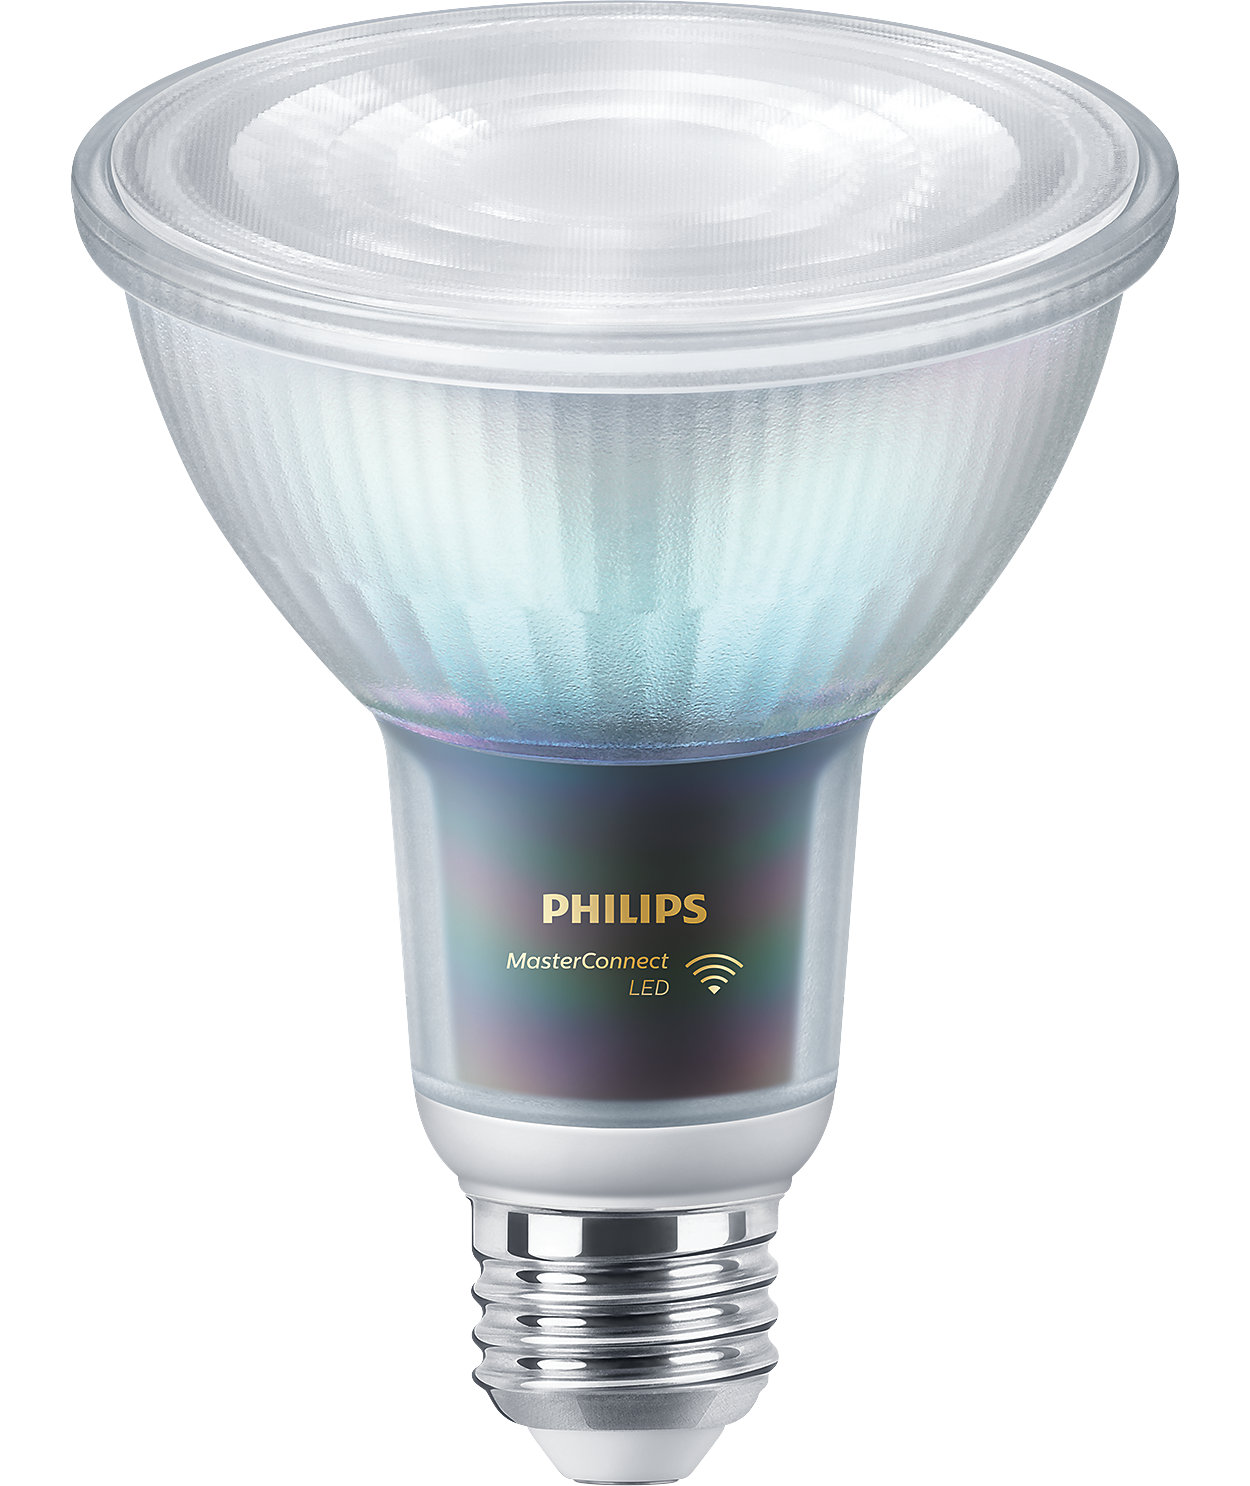 Your first step into connected lighting